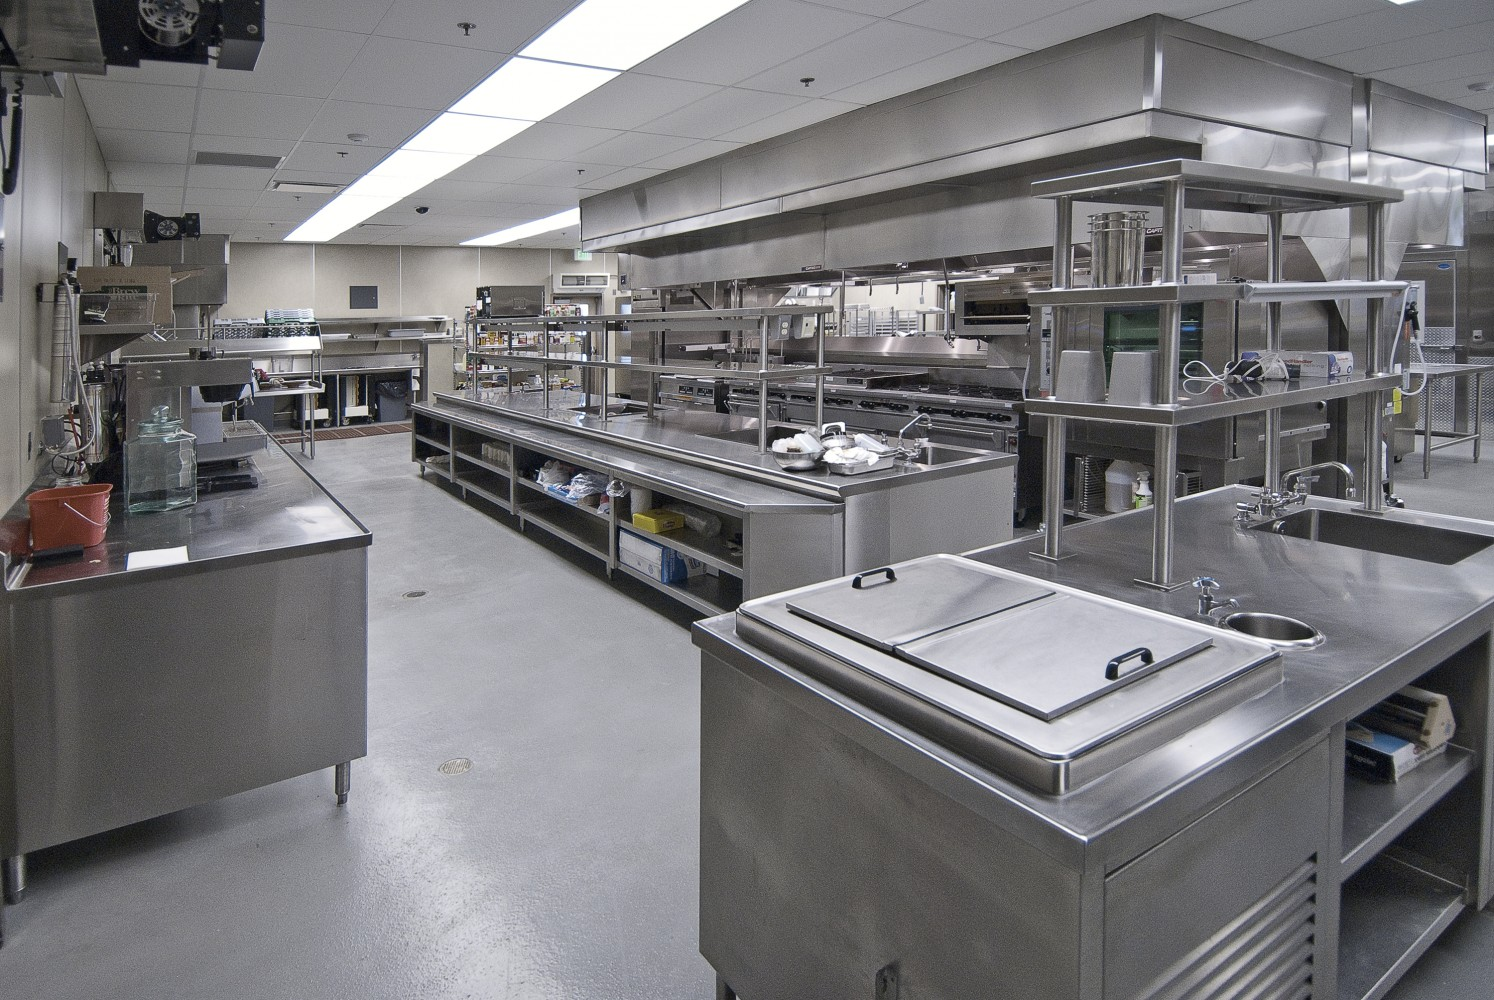 Whole set of commercial layout design hotel kitchen ...